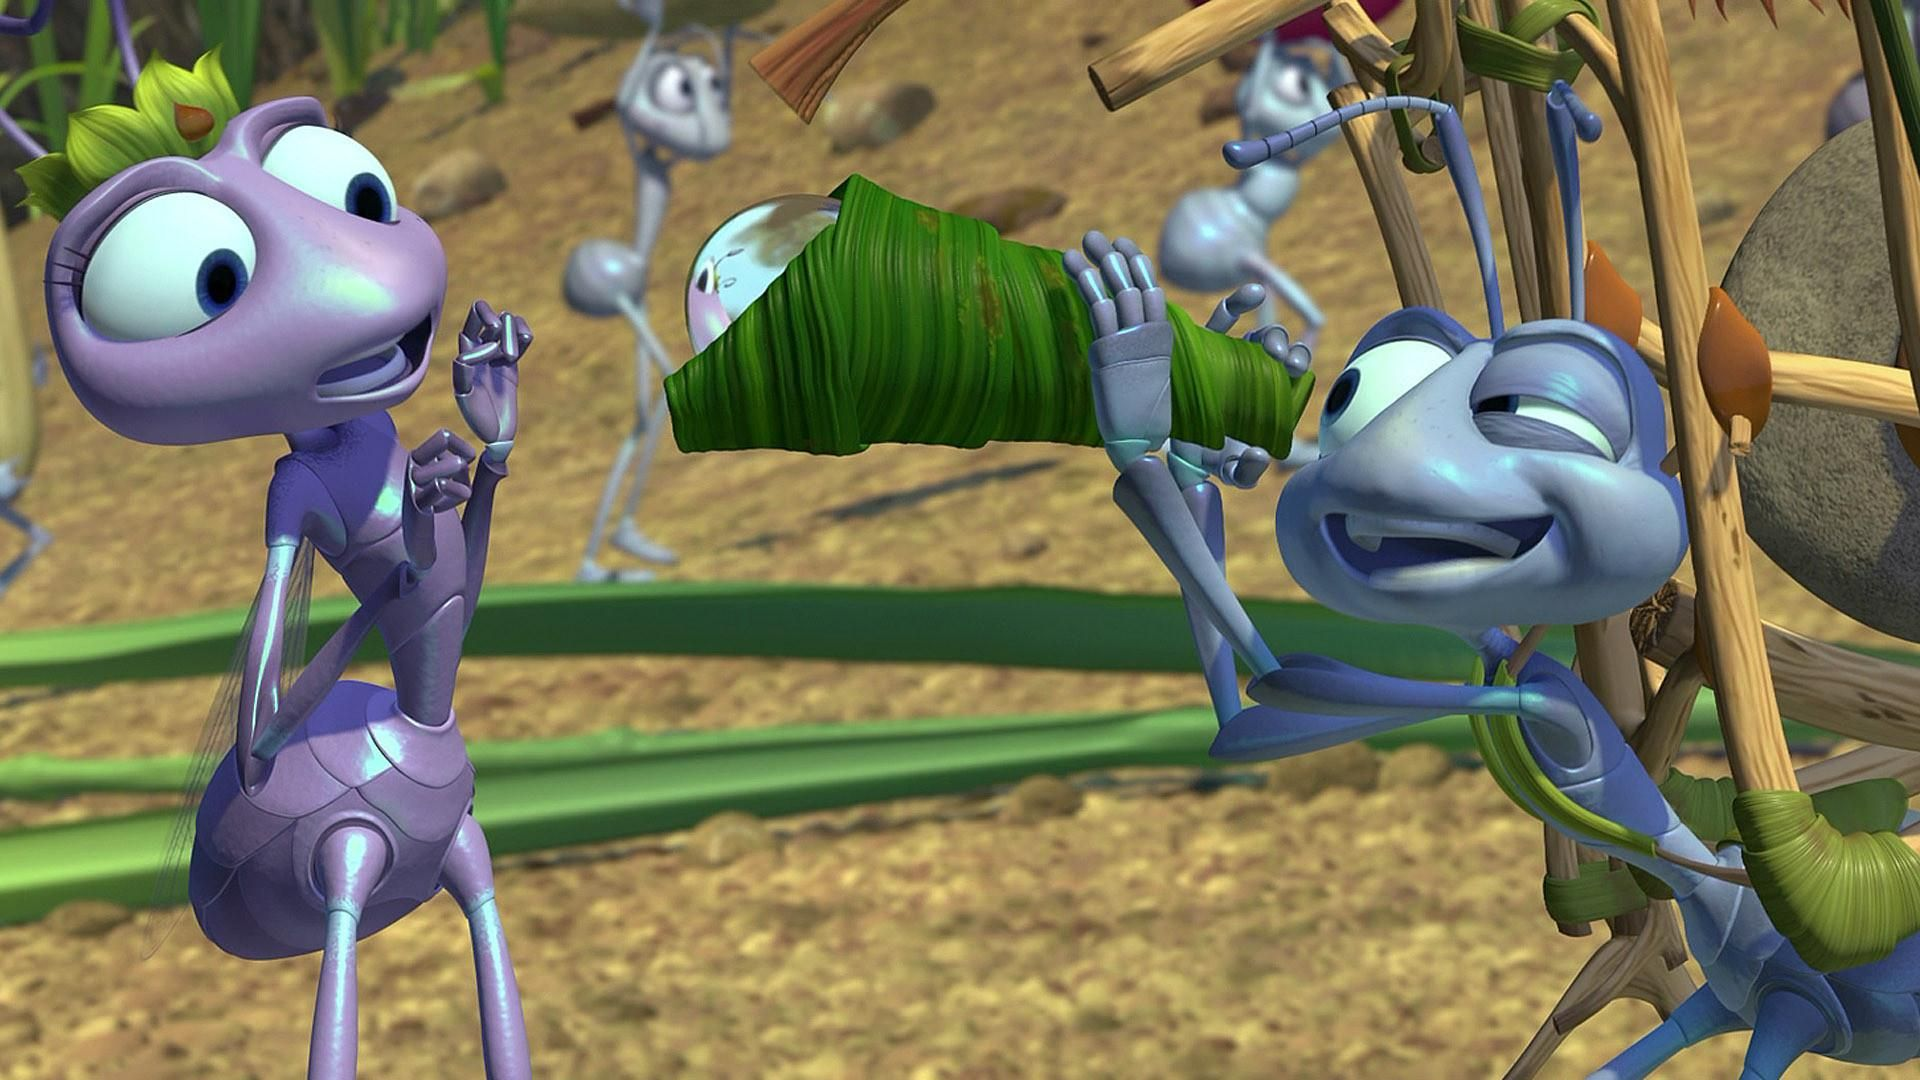 Flik For The Colony And For Oppressed Ants Everywhere Pixar